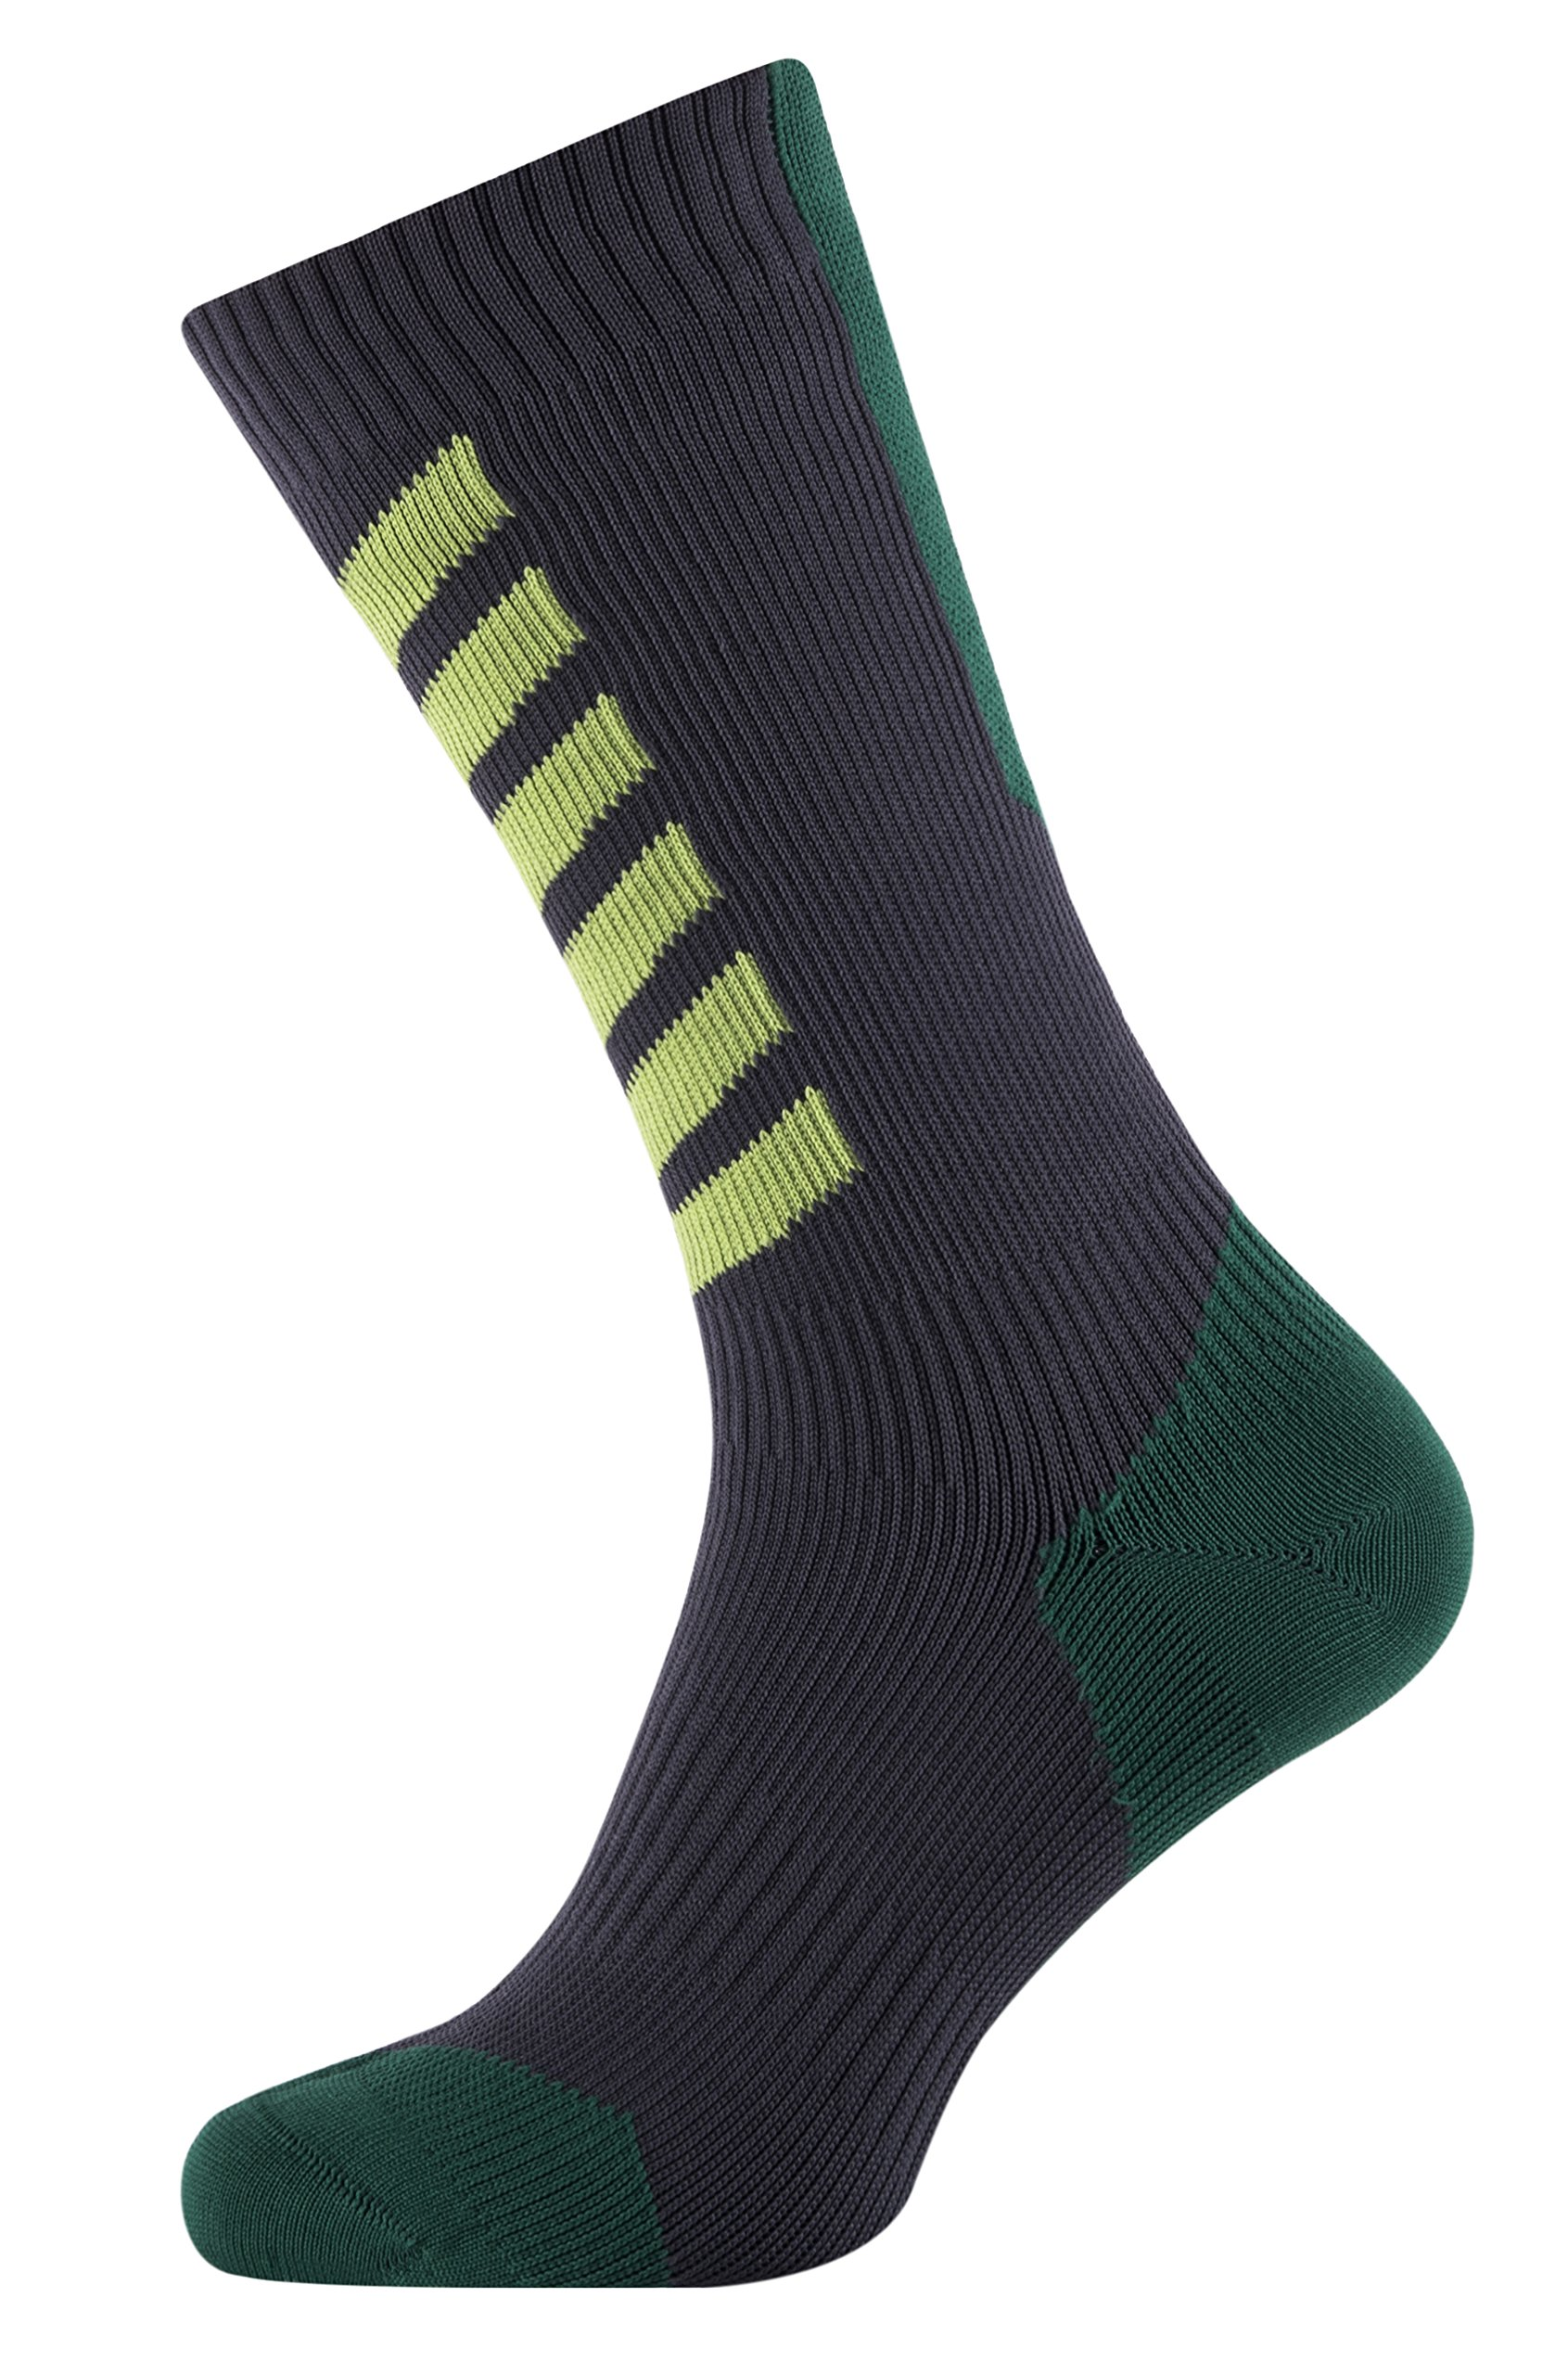 SEALSKINZ MTB Mid Mid Socks with Hydrostop, X Large - Anthracite/Leaf/Lime. With a Helicase brand sock ring by SEALSKINZ